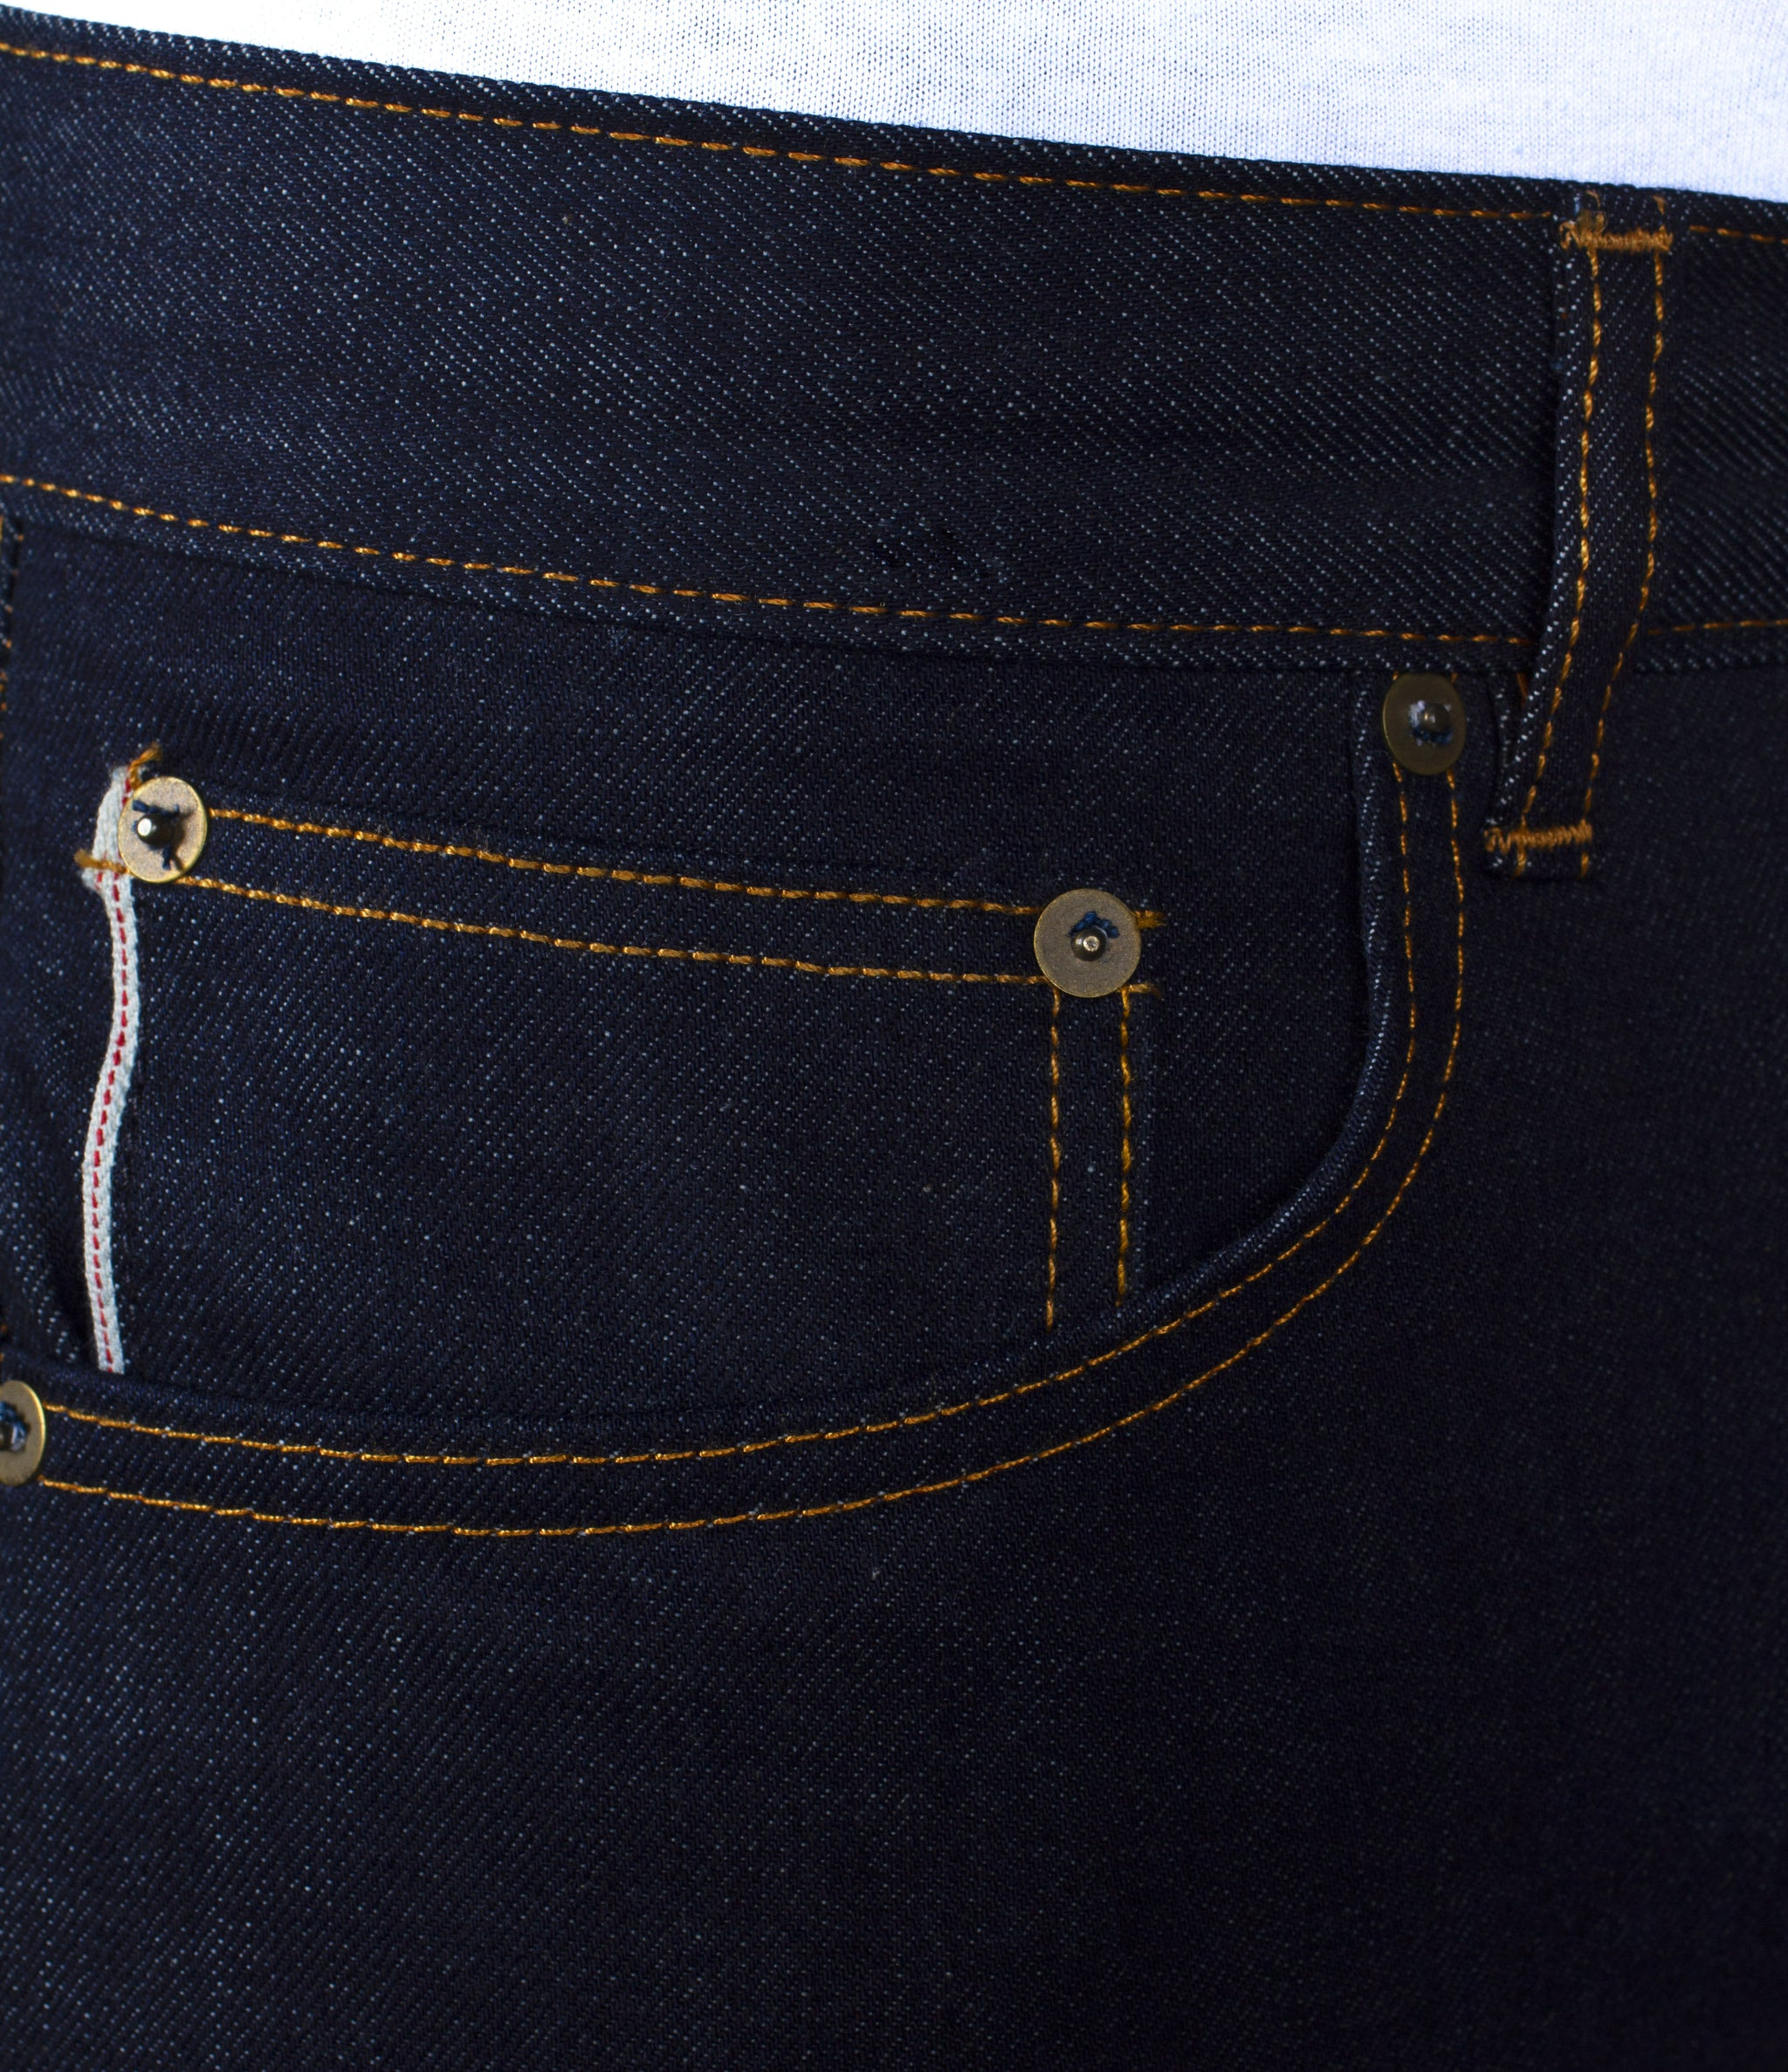 The Skeleton Skinny 13oz 'W211' Cone Mills Selvage